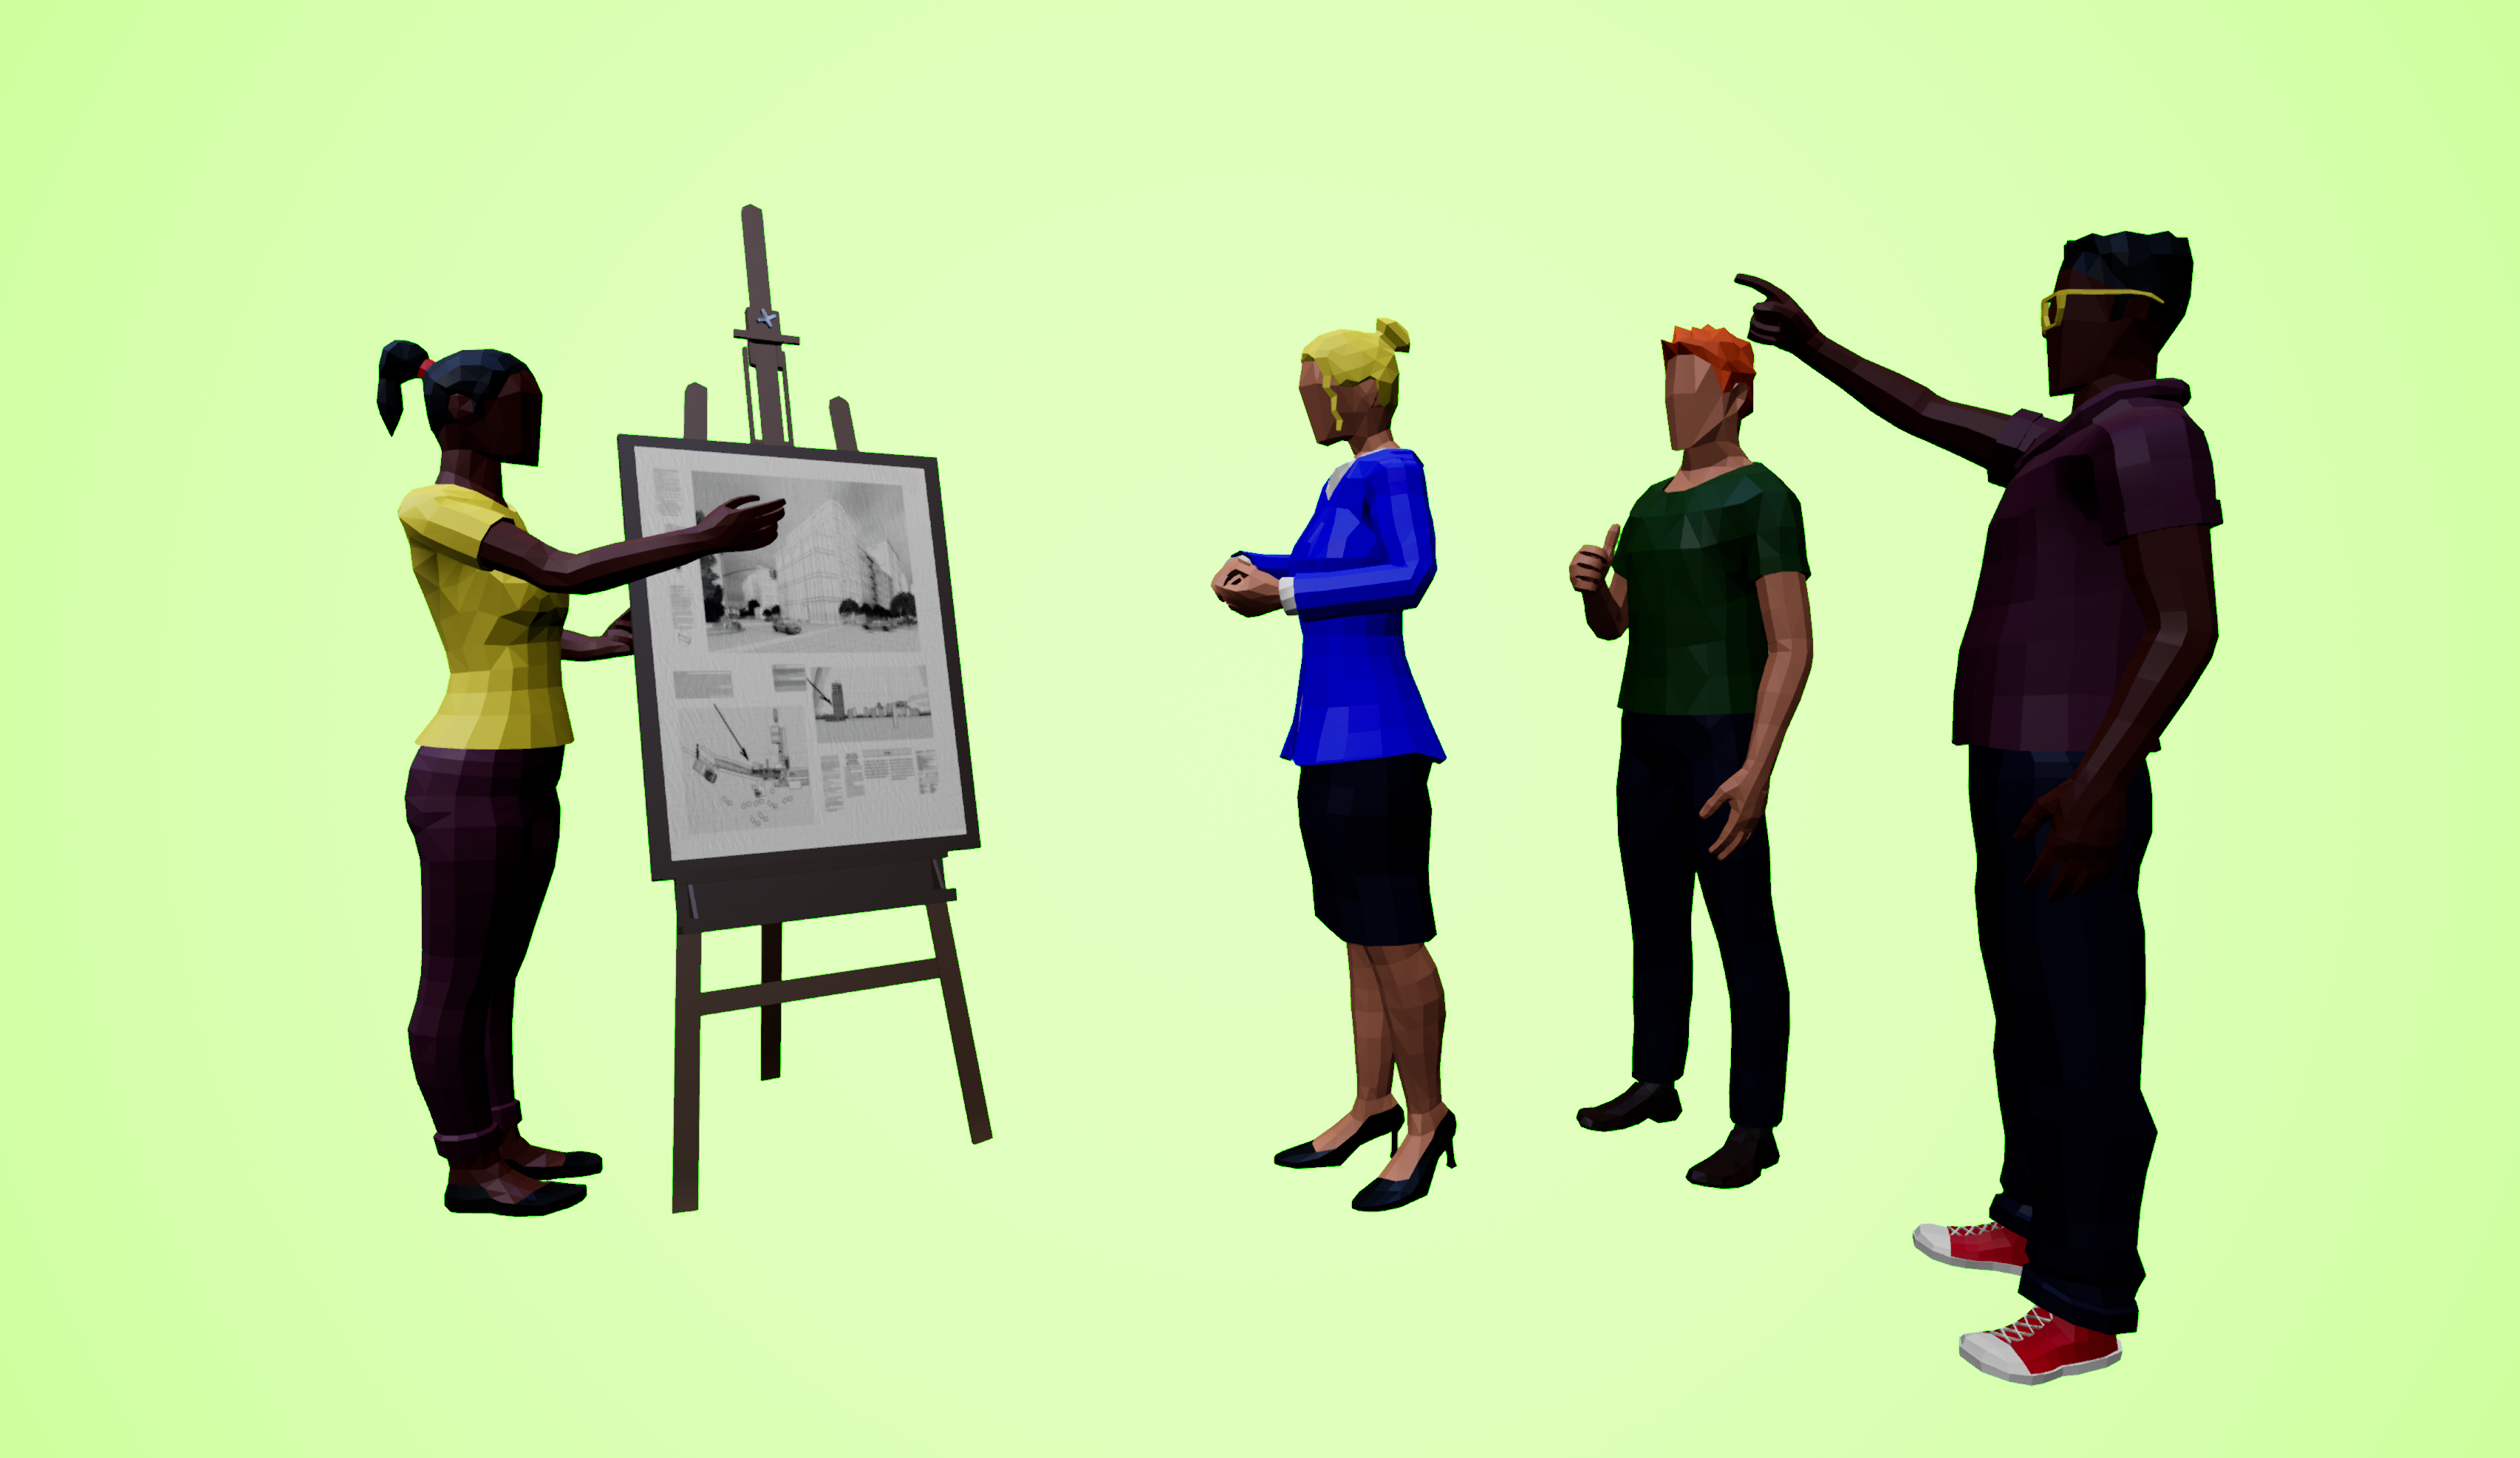 Avatars discussing in a virtual classroom